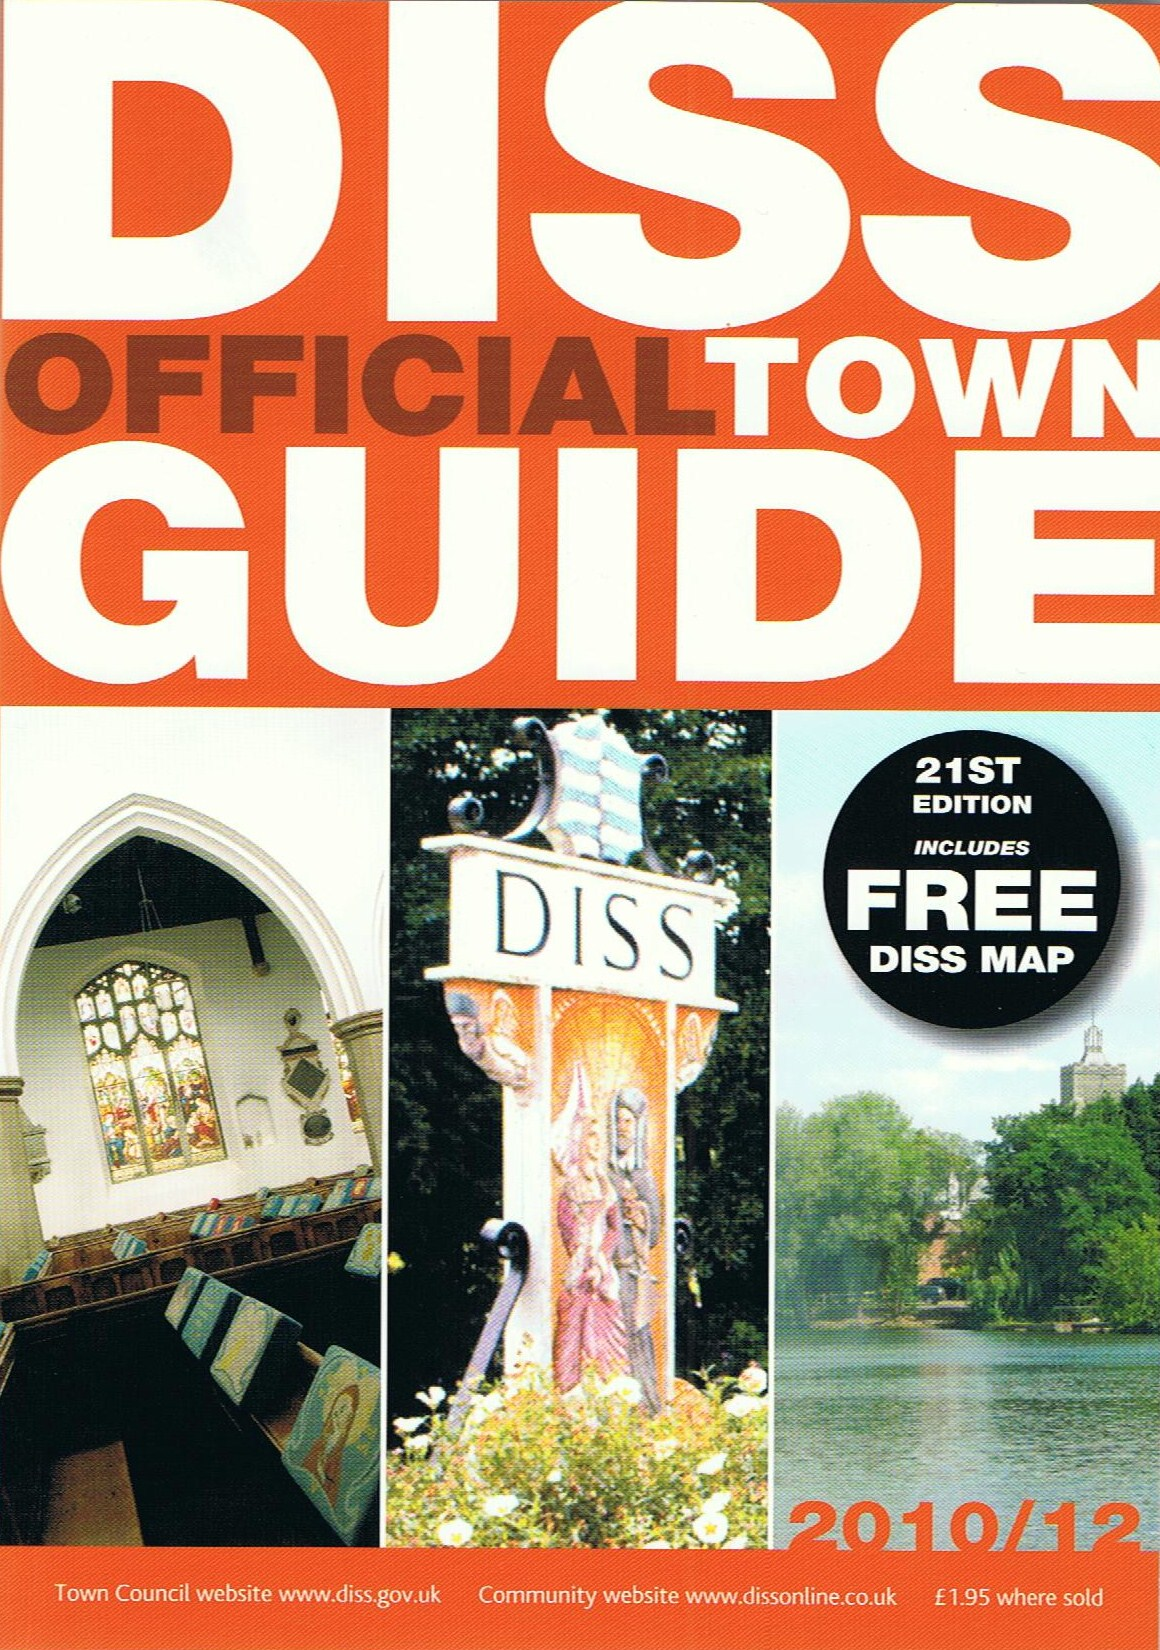 Diss, norfolk 1977 | scanned from the diss town guide 1977-7… | flickr.